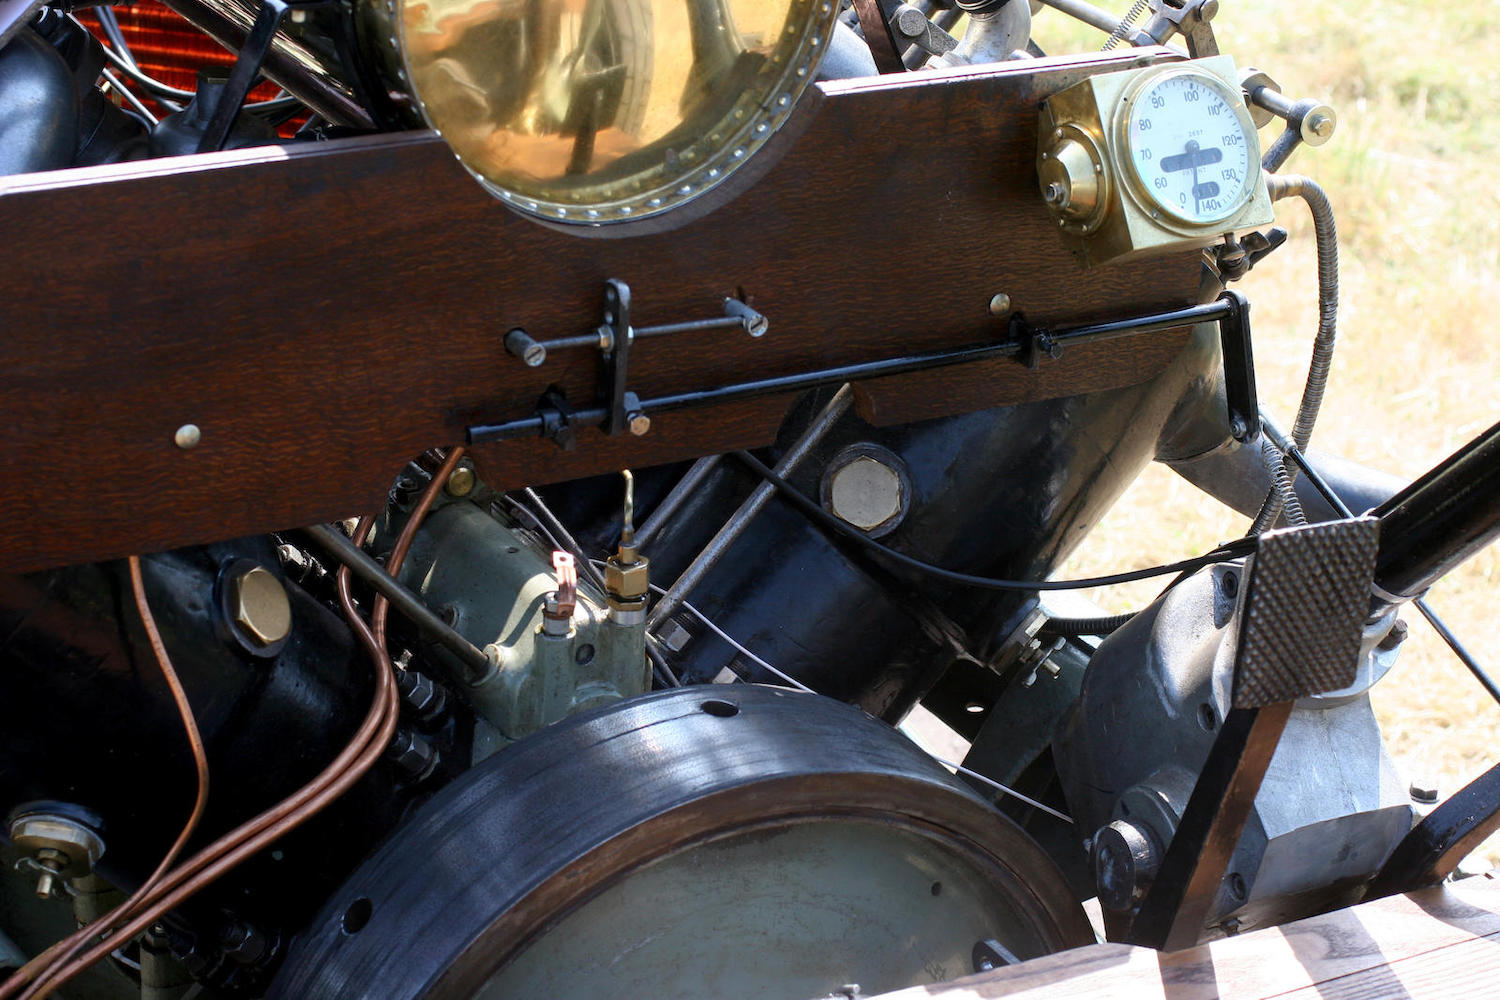 1905 Darracq Sprint Two-Seater close-up